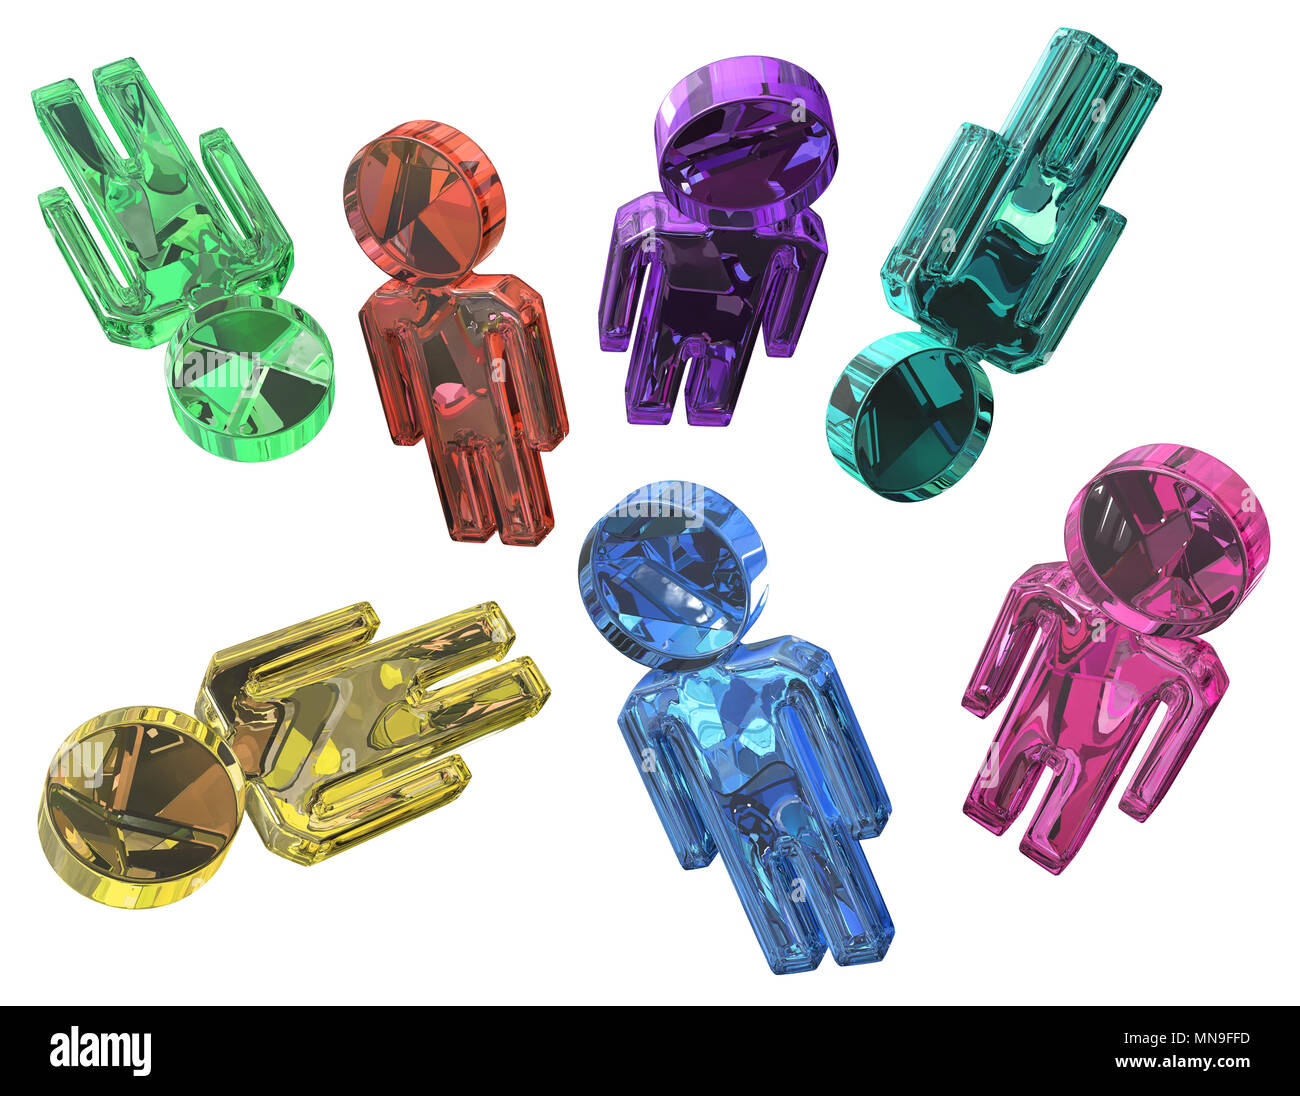 Many color crystal jewel people figures, 3d illustration, horizontal, isolated, over white - Stock Image